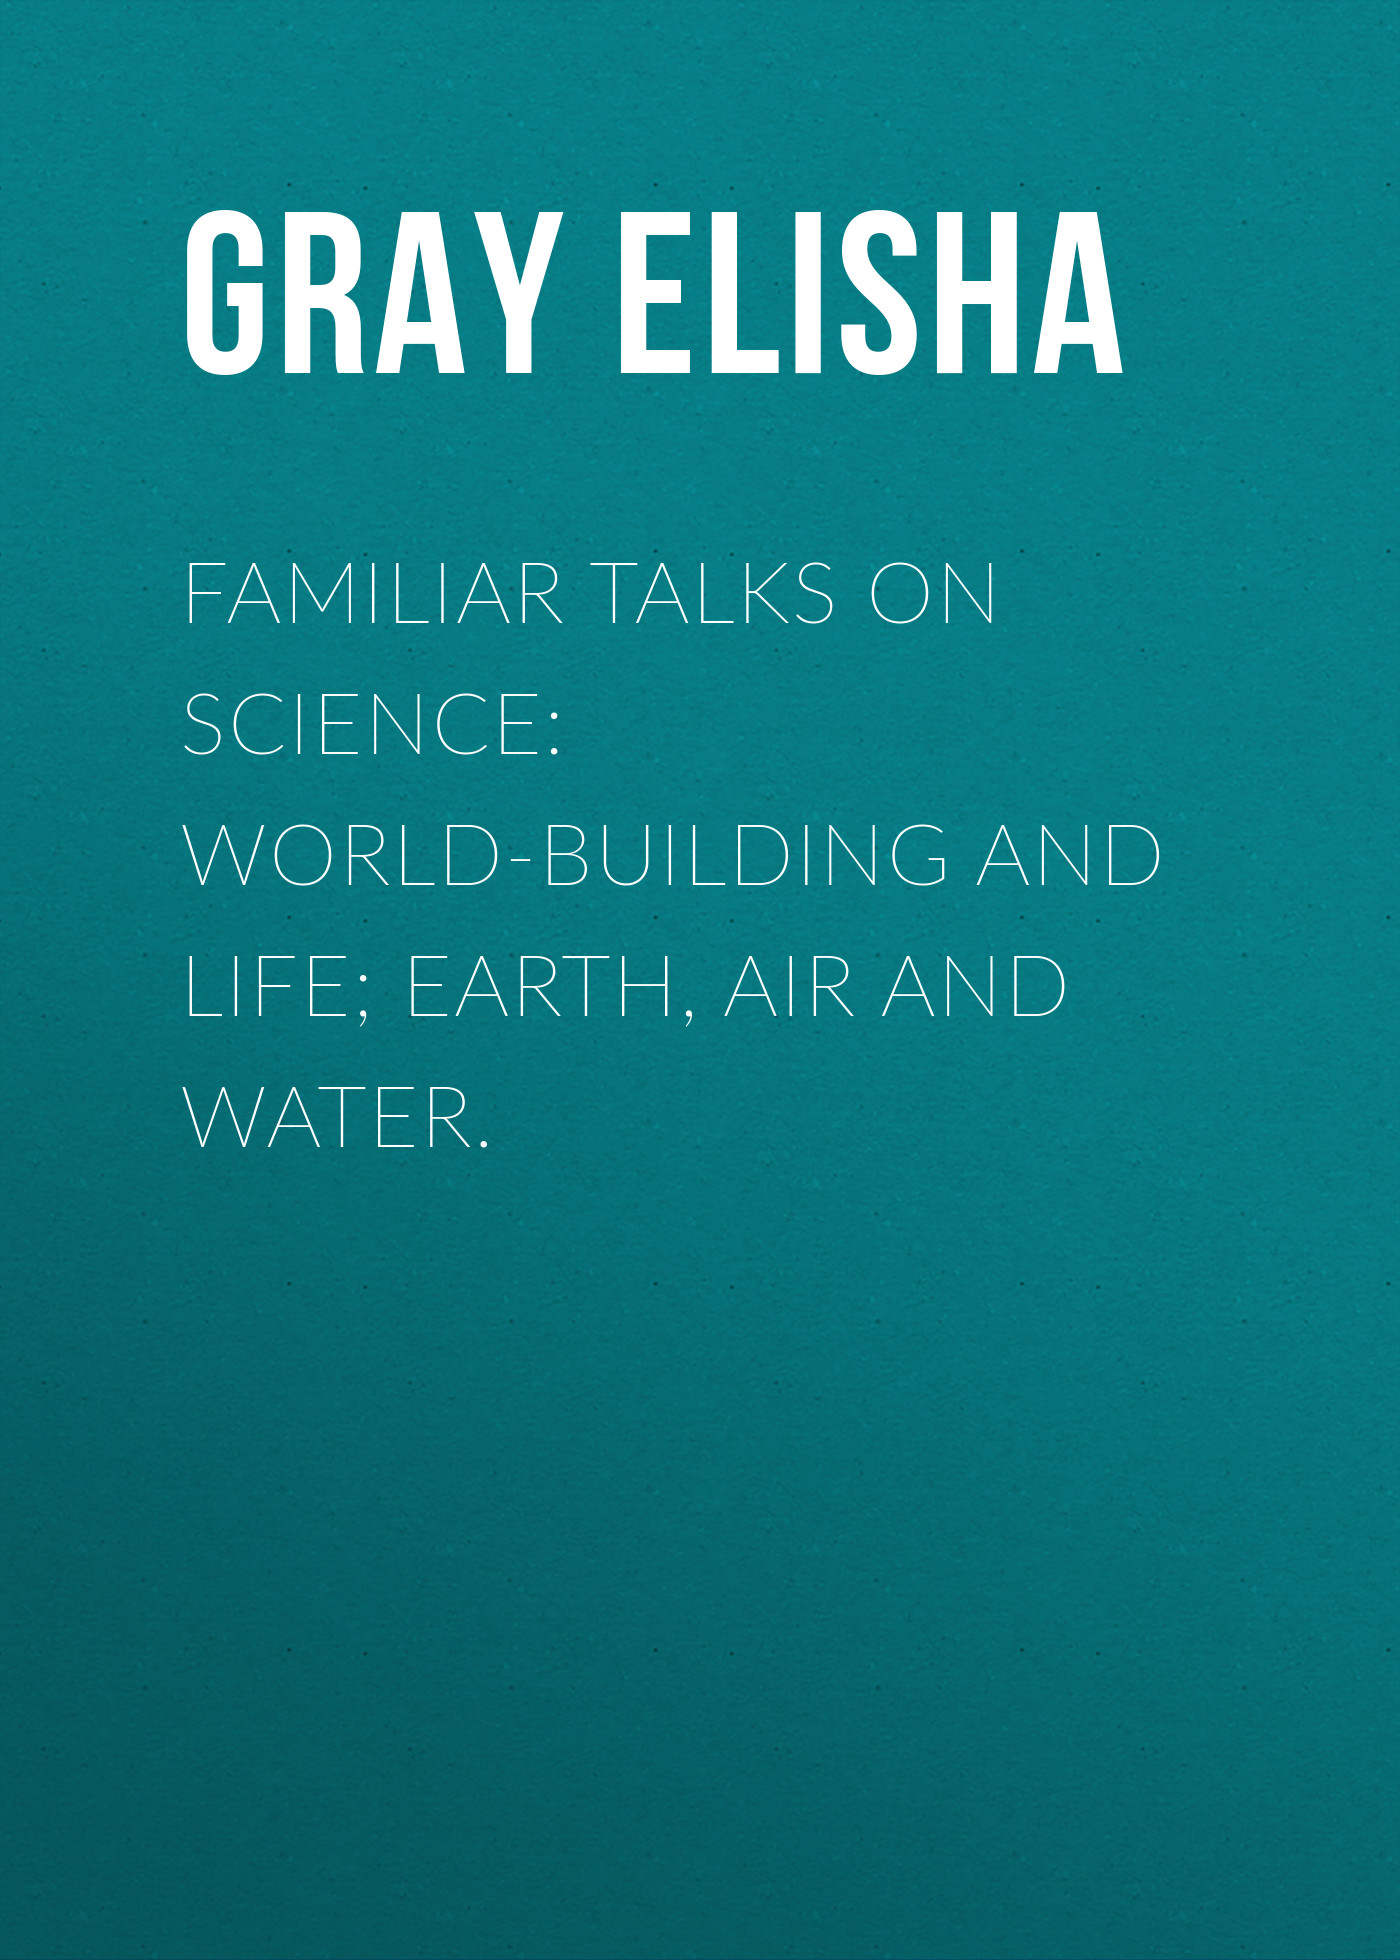 Gray Elisha Familiar Talks on Science: World-Building and Life; Earth, Air and Water.